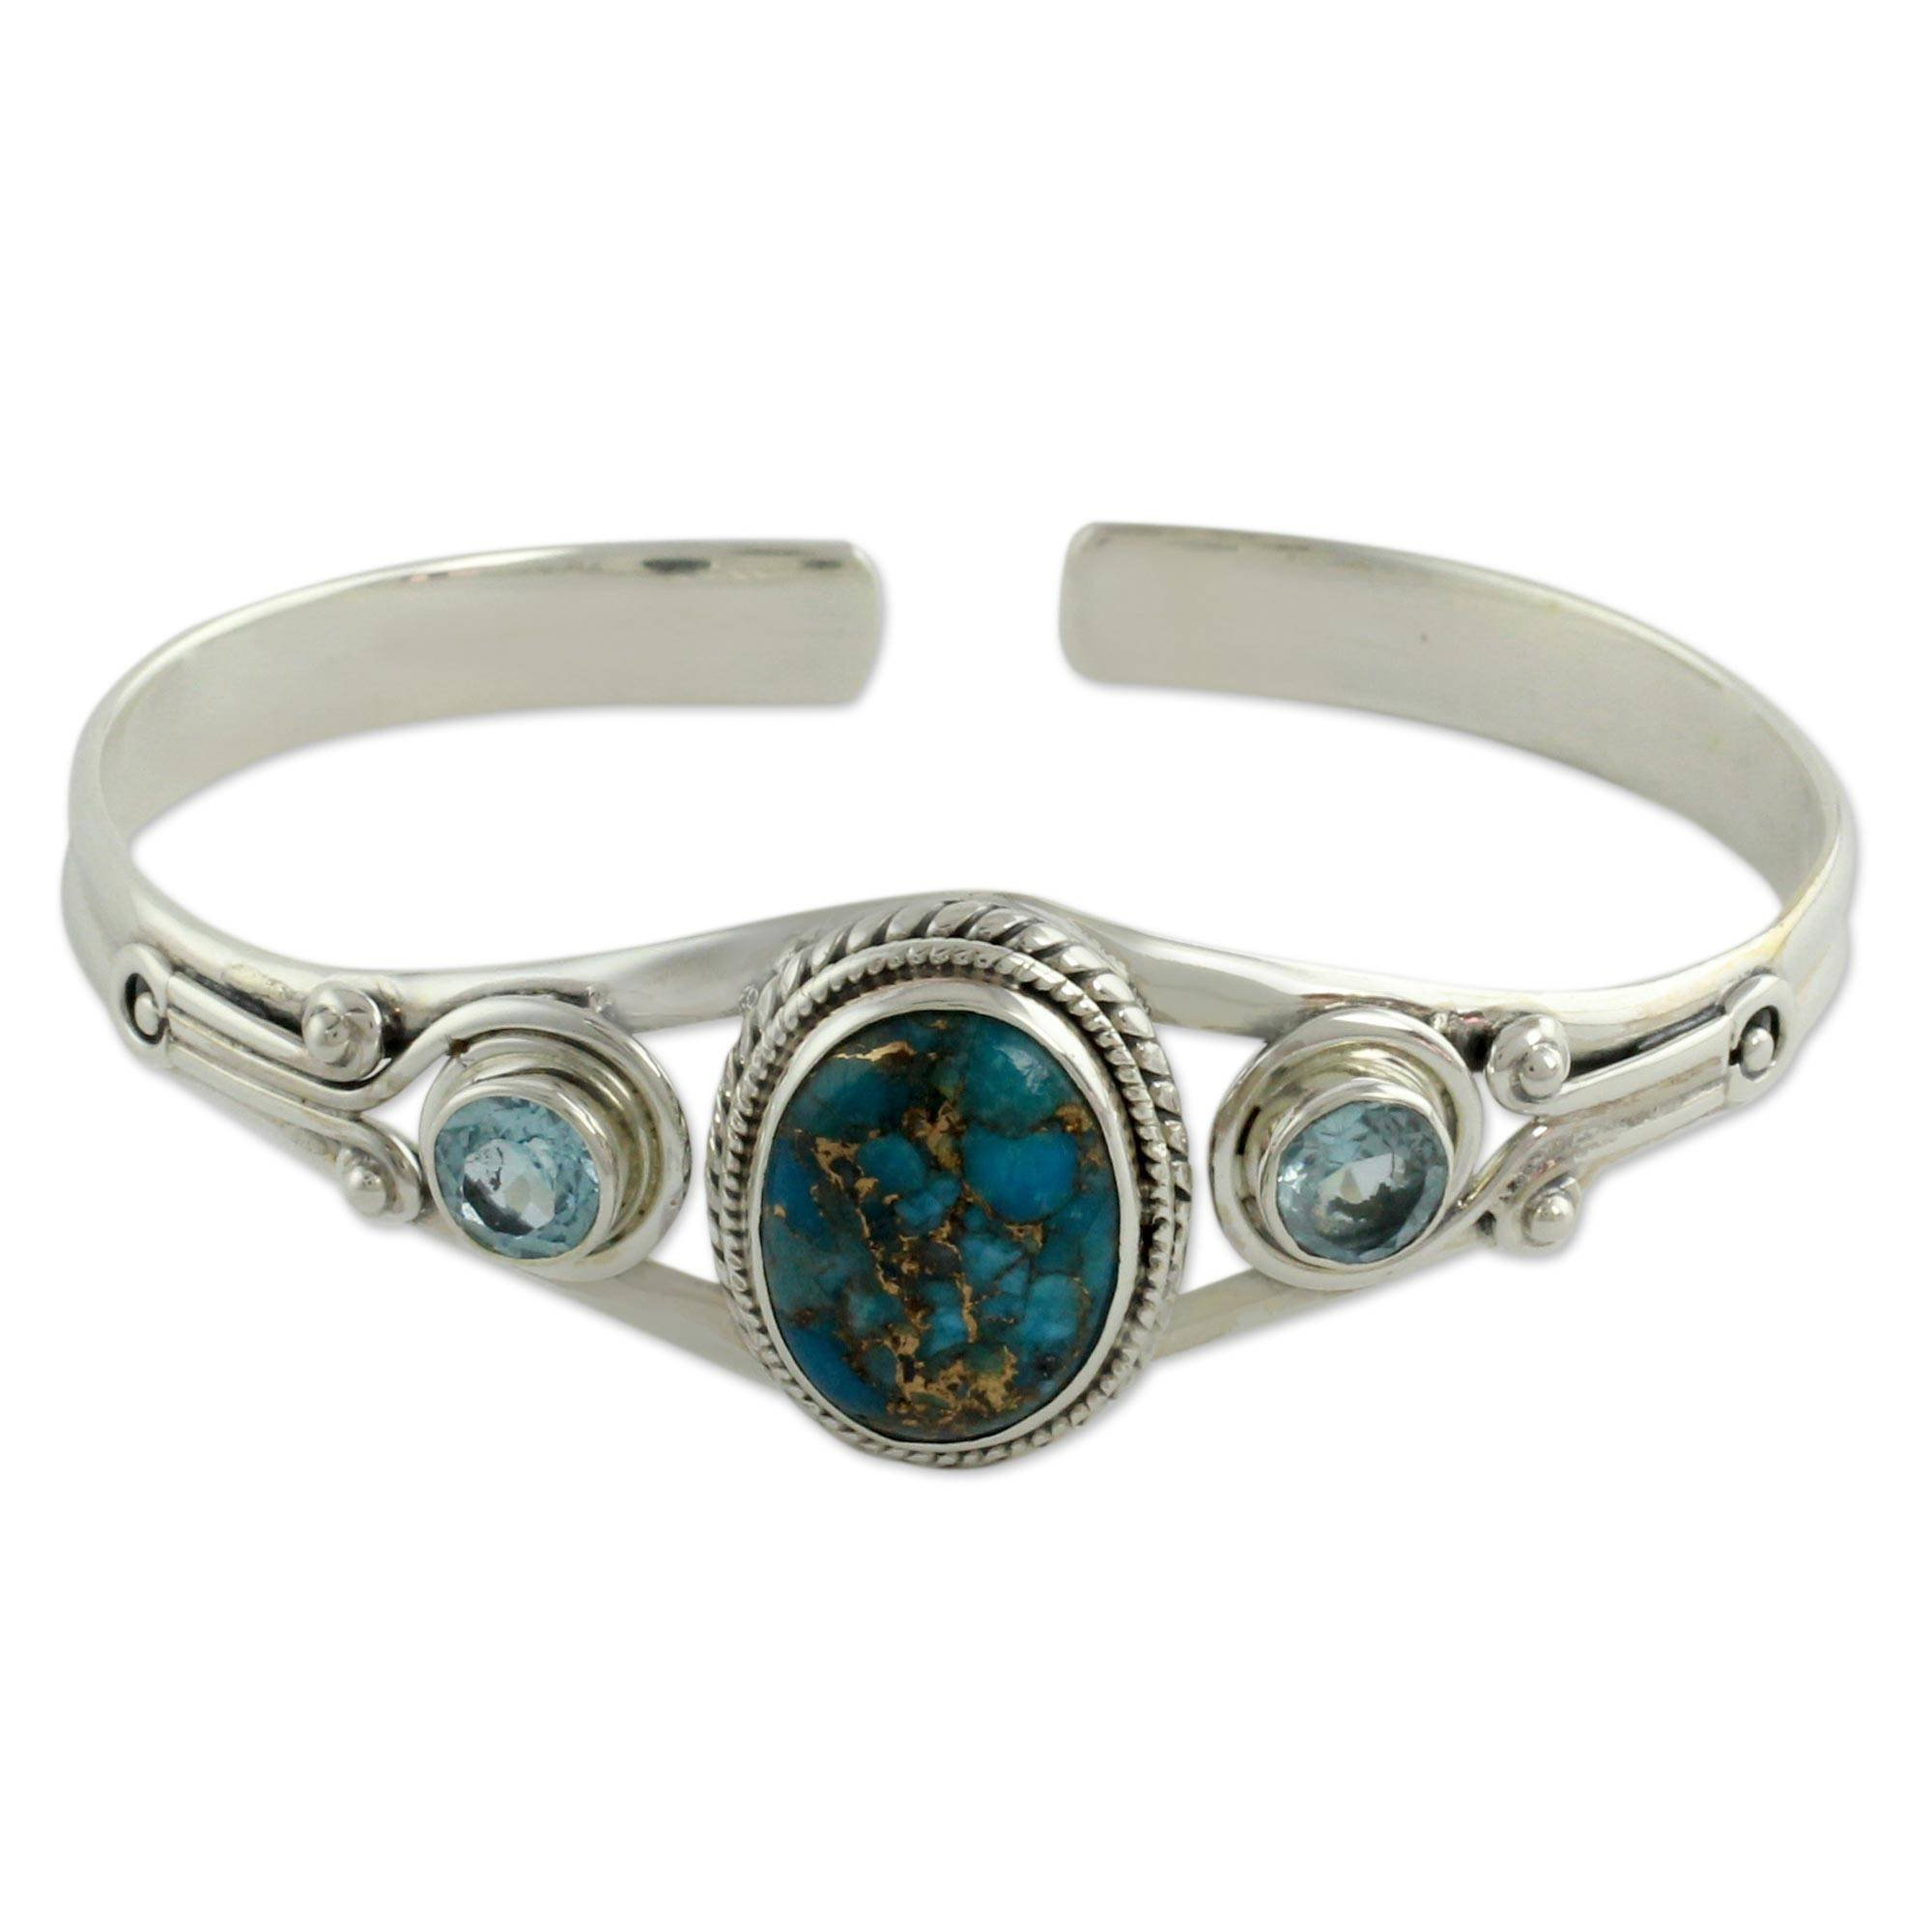 NOVICA 925 Sterling Silver Cuff Bracelet with Reconstituted Turquoise and Blue Topaz 'Azure Heavens'